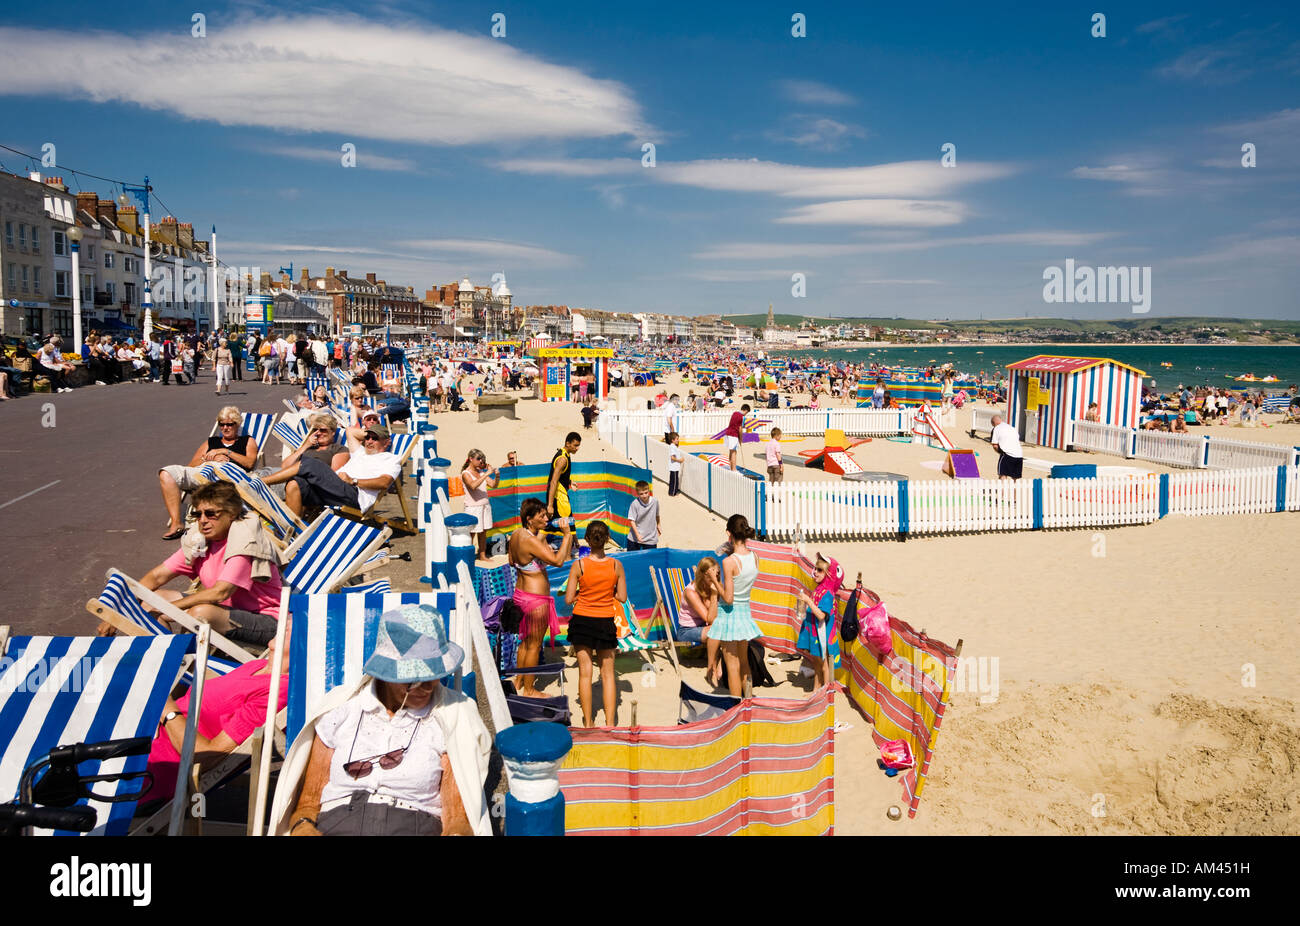 People At A Traditional British Seaside Beach In Summer At Weymouth